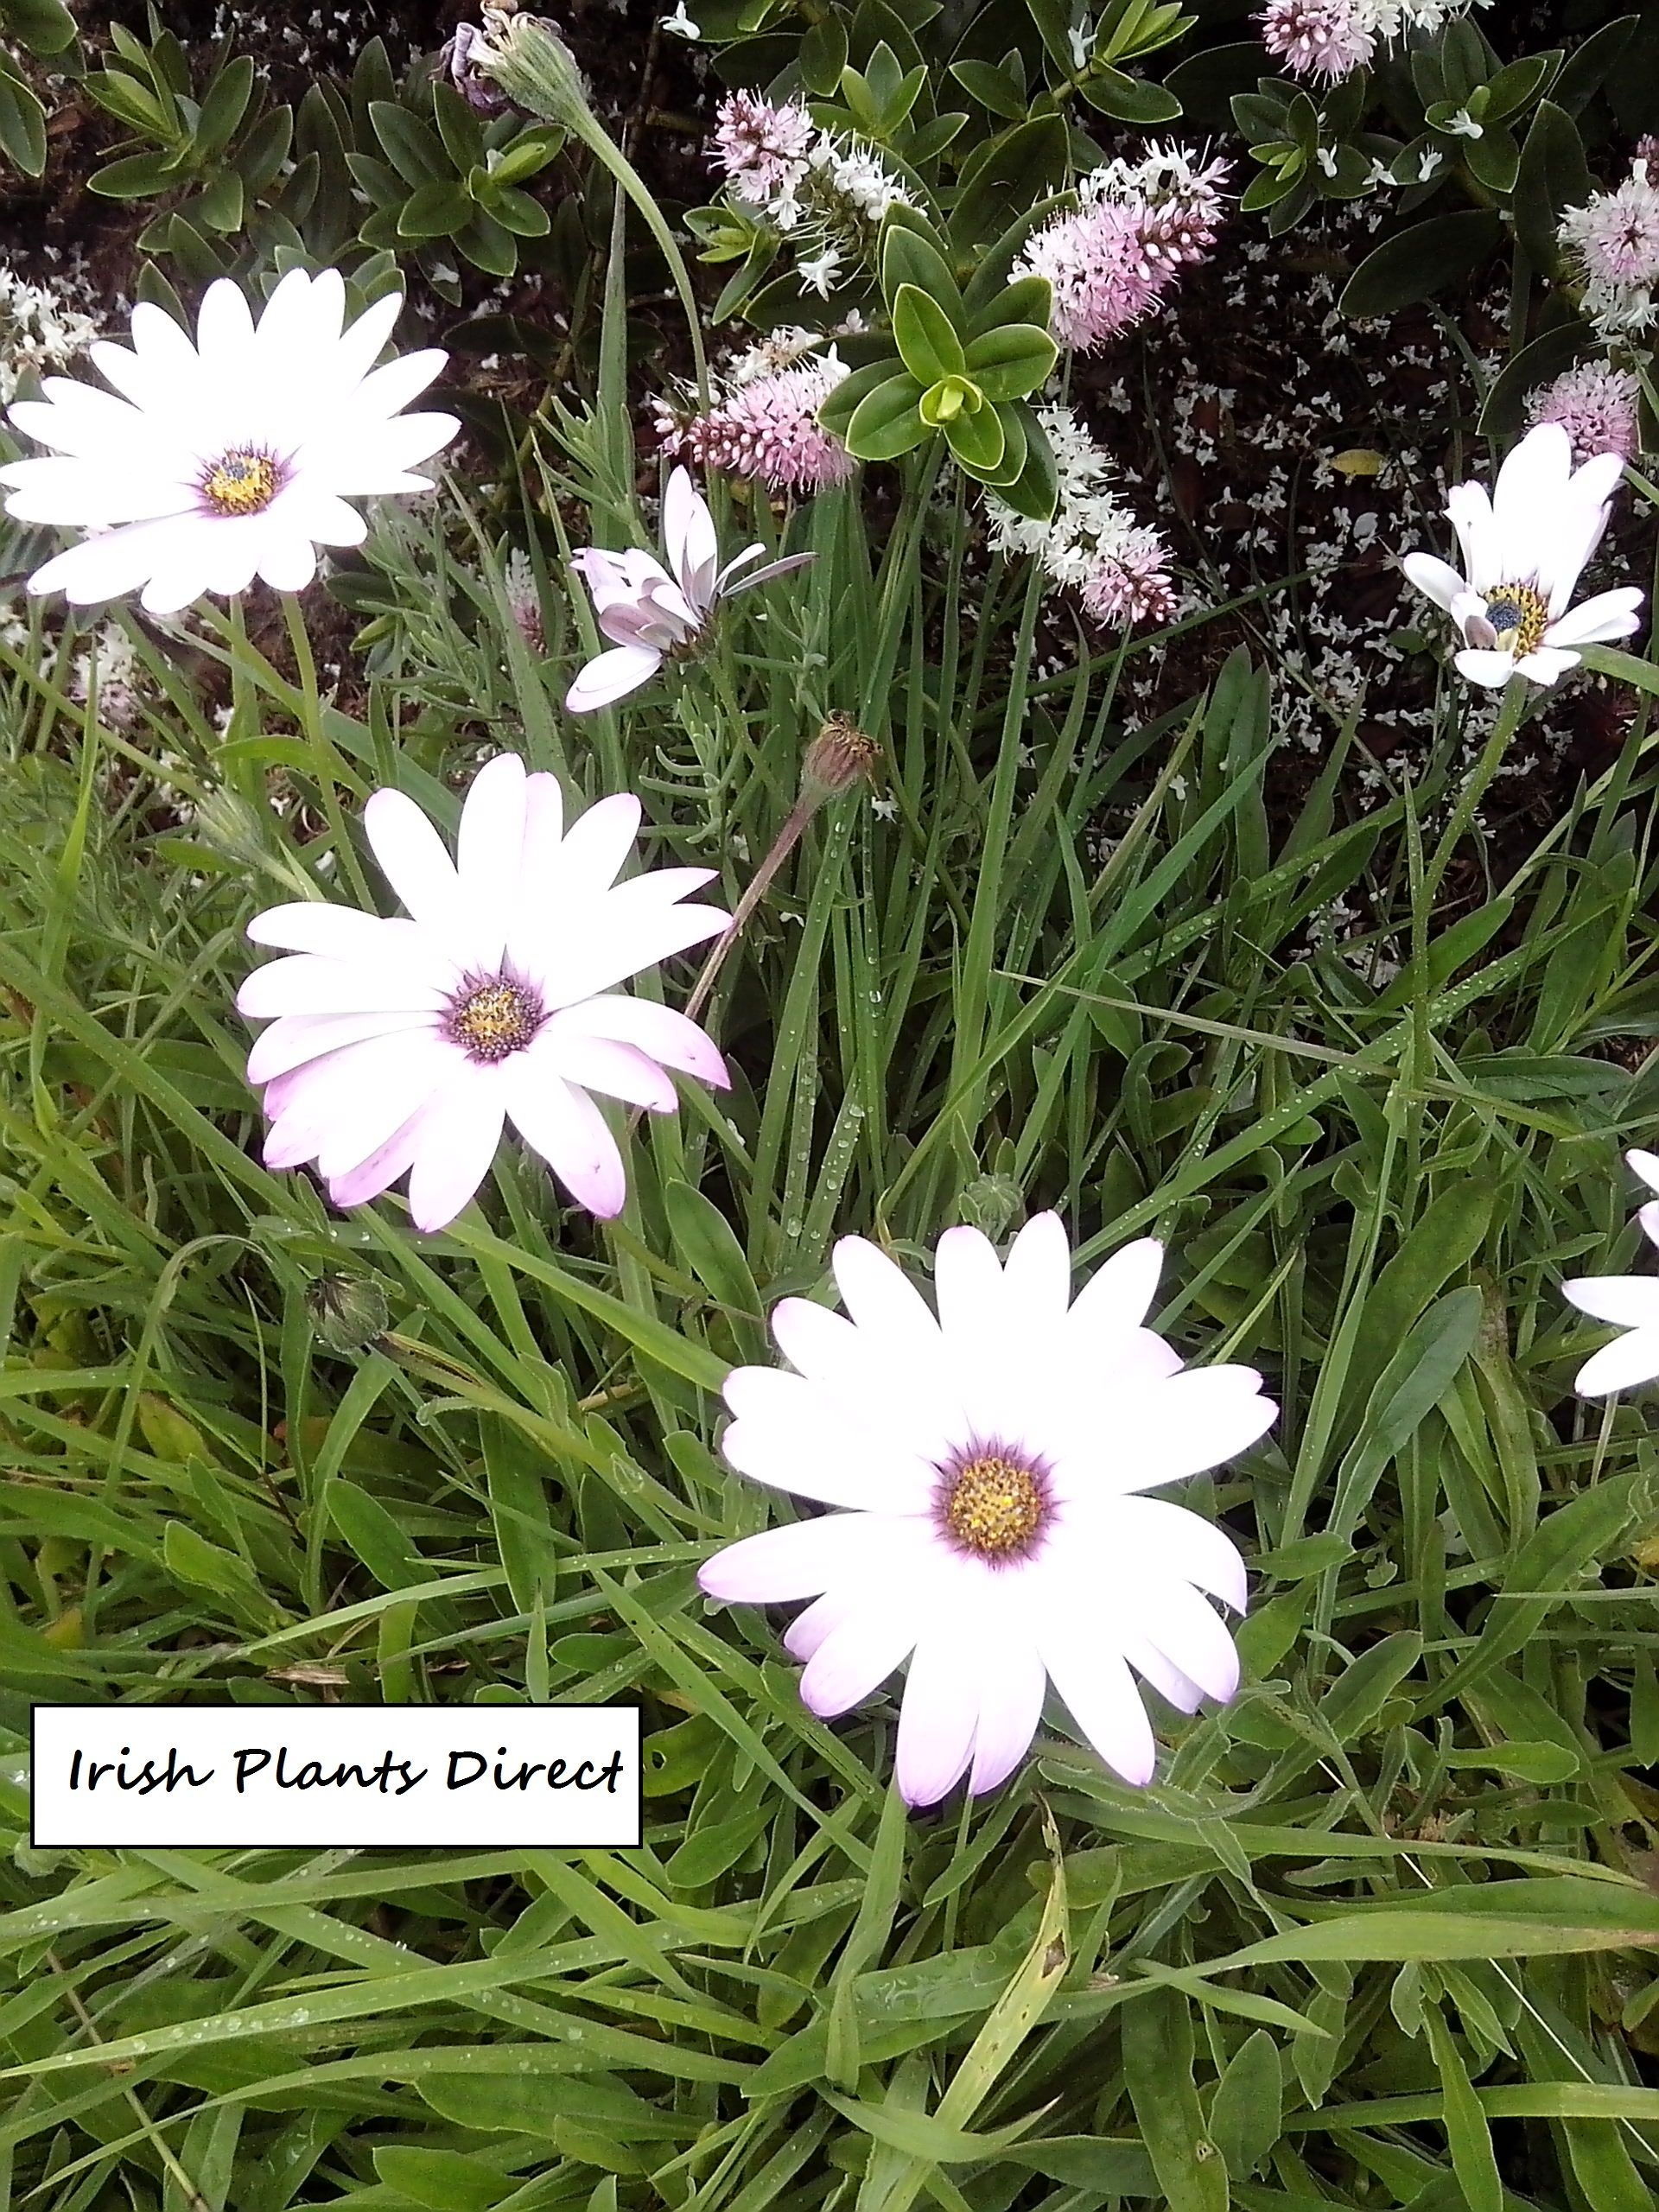 Osteospermum lady leitrim the wonderful daisy like flowers have the wonderful daisy like flowers have smothered this plant all summer its sweet scent makes weeding this flowerbed bed a joy izmirmasajfo